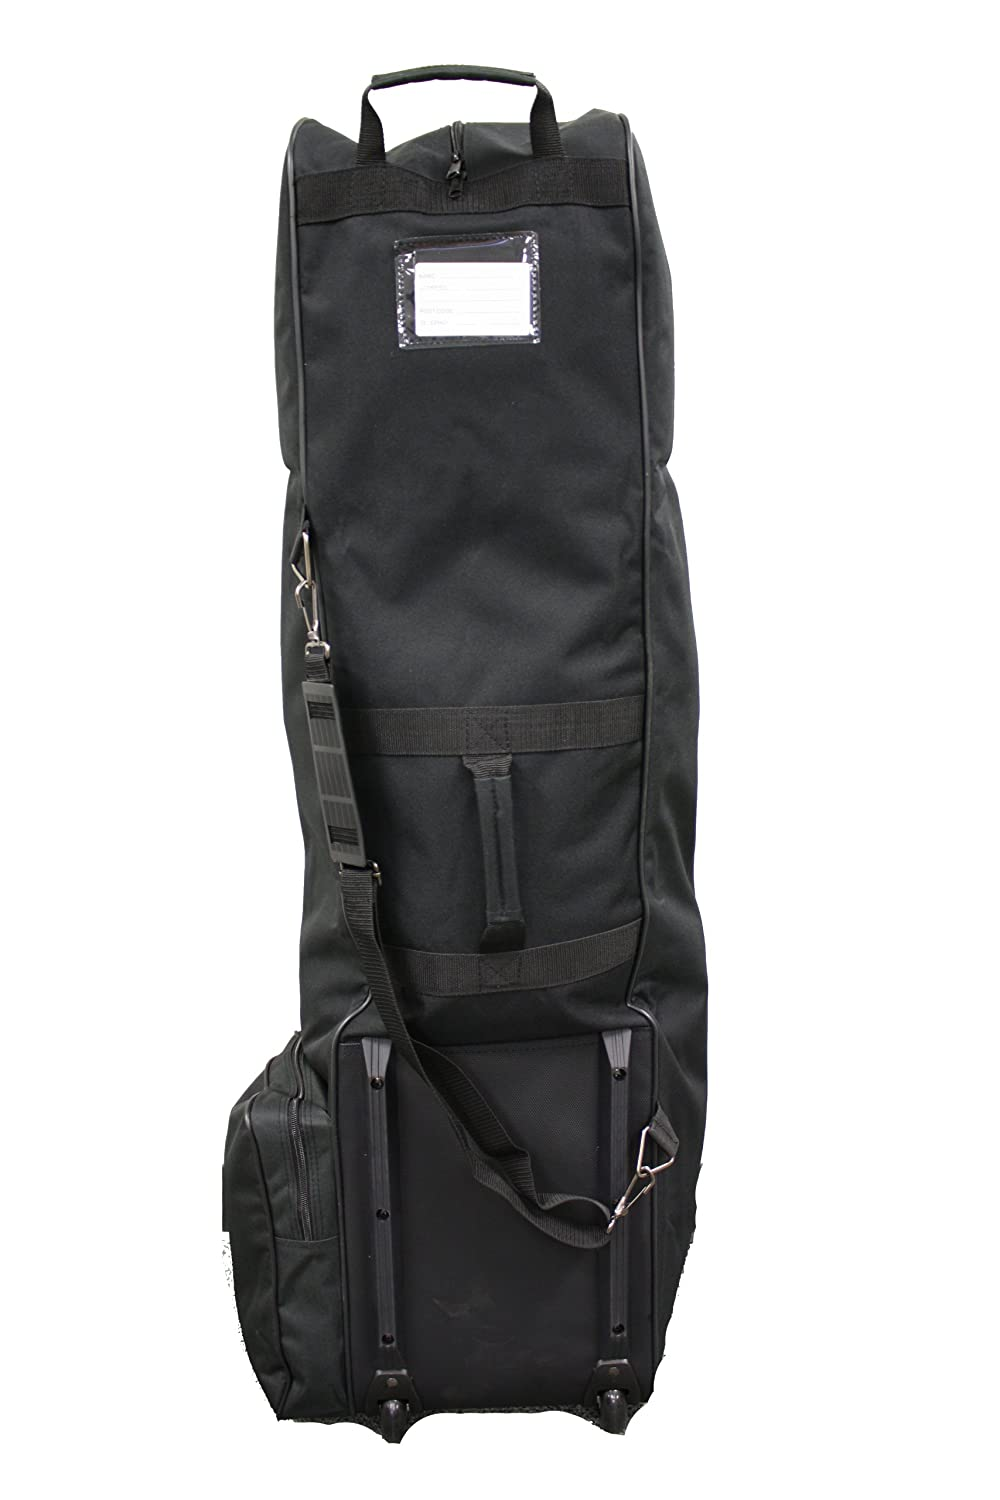 Amazon.com   Club Champ Golf Bag Travel Cover   Golf Bag Accessories    Sports   Outdoors 20a2f4700581